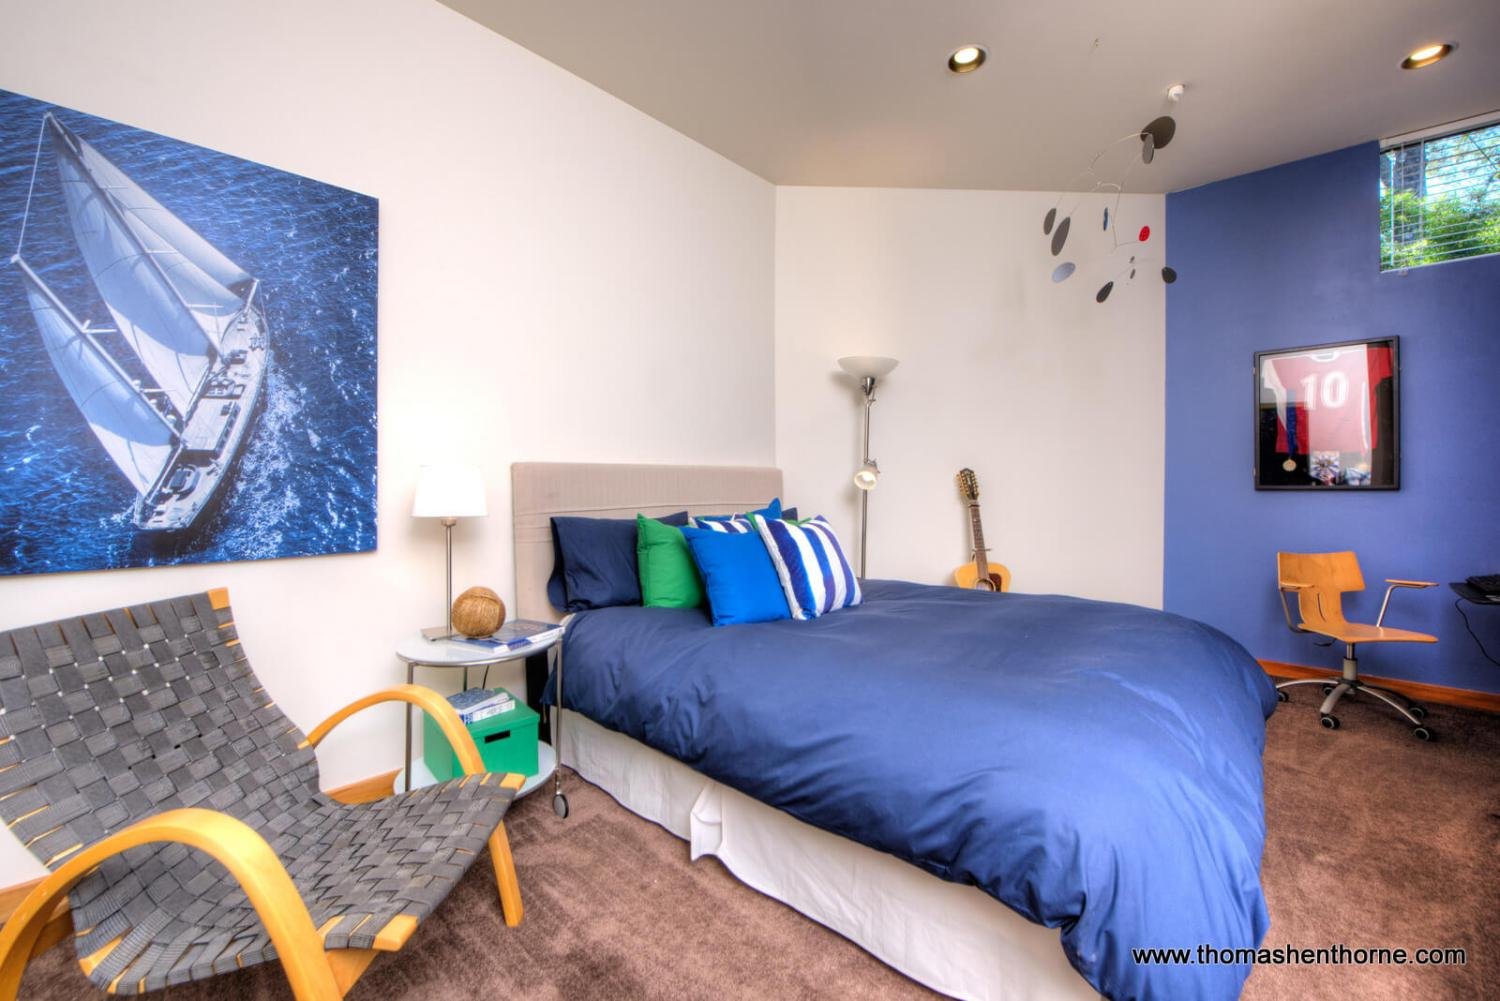 Guest room with blue walls and blue comforter